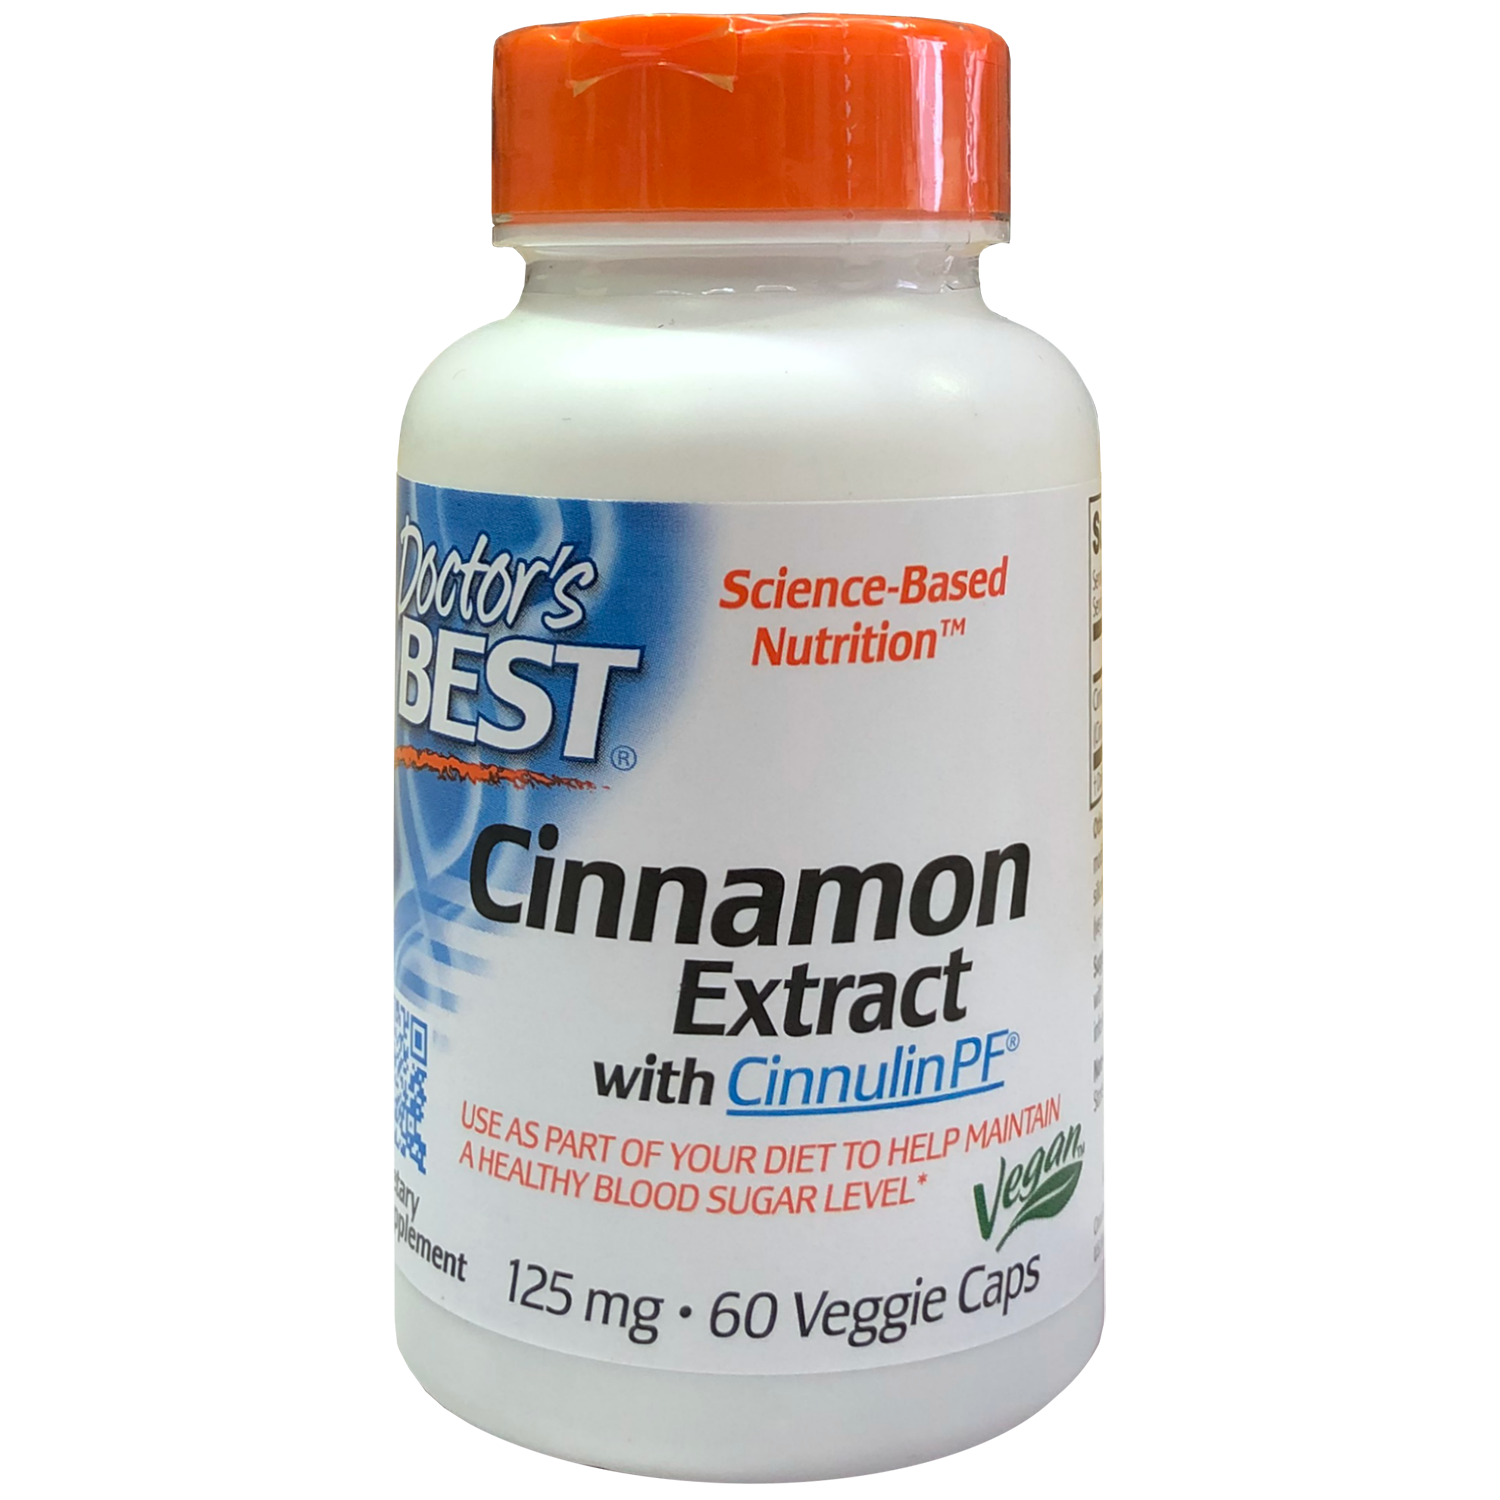 Doctor's Best Cinnamon Extract